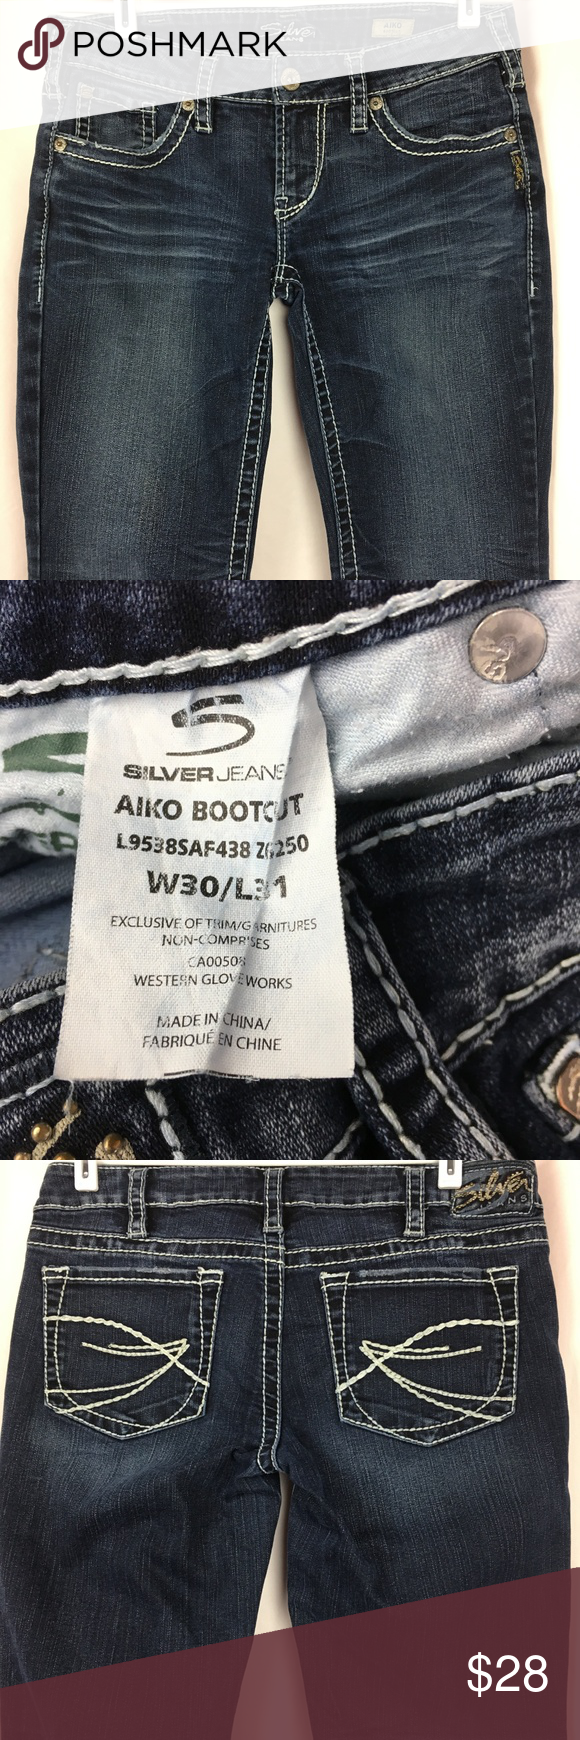 48211d88 SILVER JEANS AIKO 30X29 Womens Bootcut Dark Wash SILVER JEANS AIKO 30X29 Dark  Wash Boot Cut